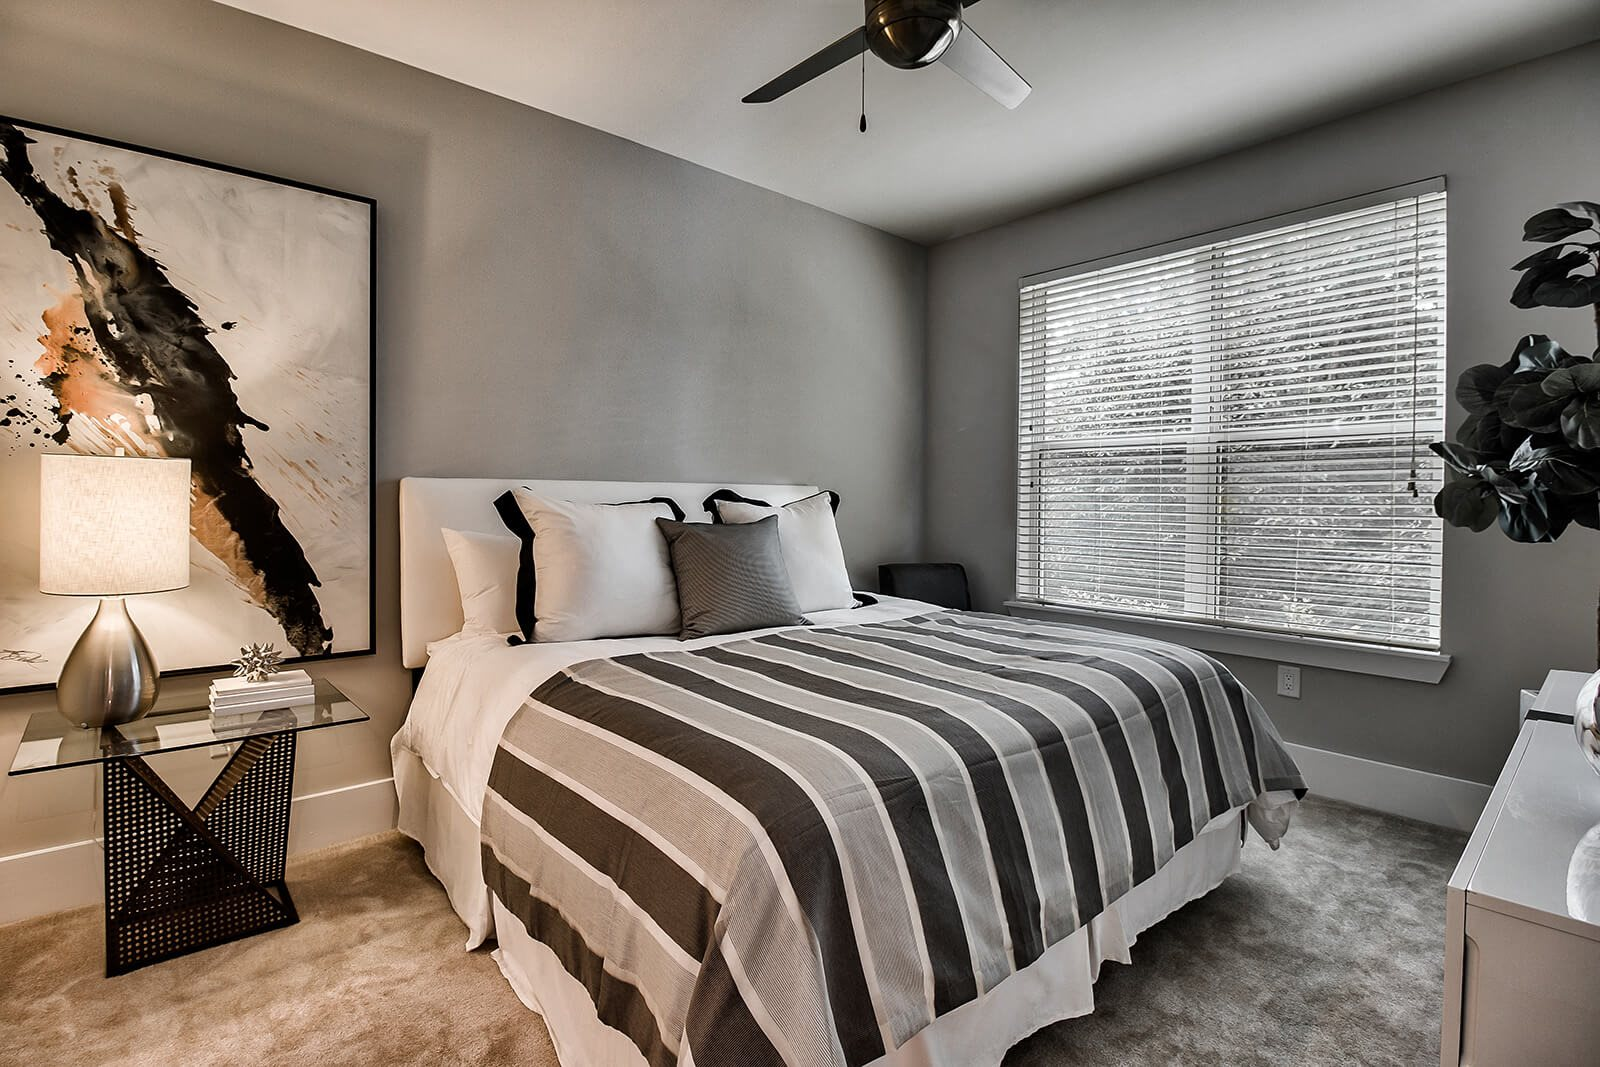 Contemporary Fans in All Bedrooms at Morningside Atlanta by Windsor, 30324, GA